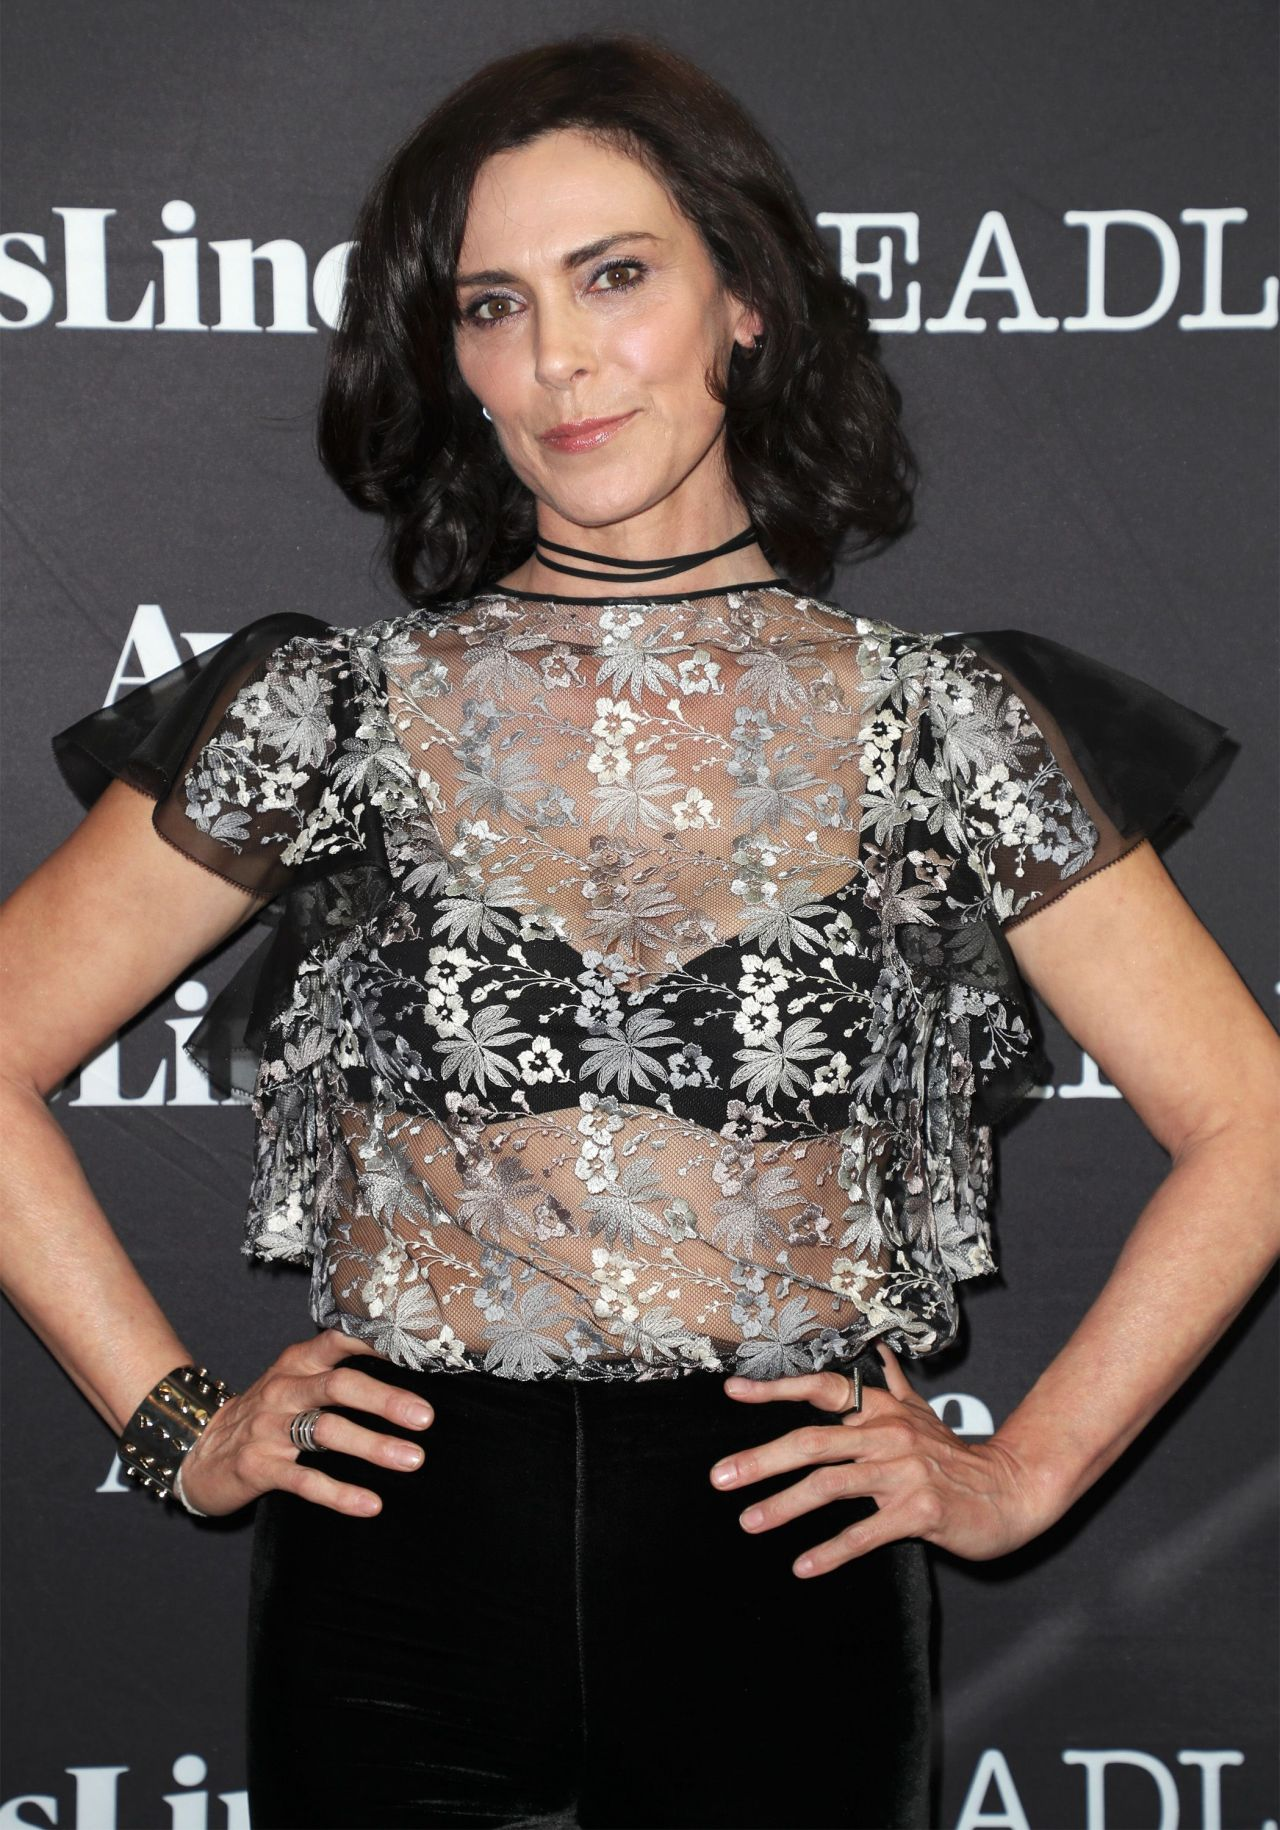 Michelle Forbes Latest Photos Celebmafia